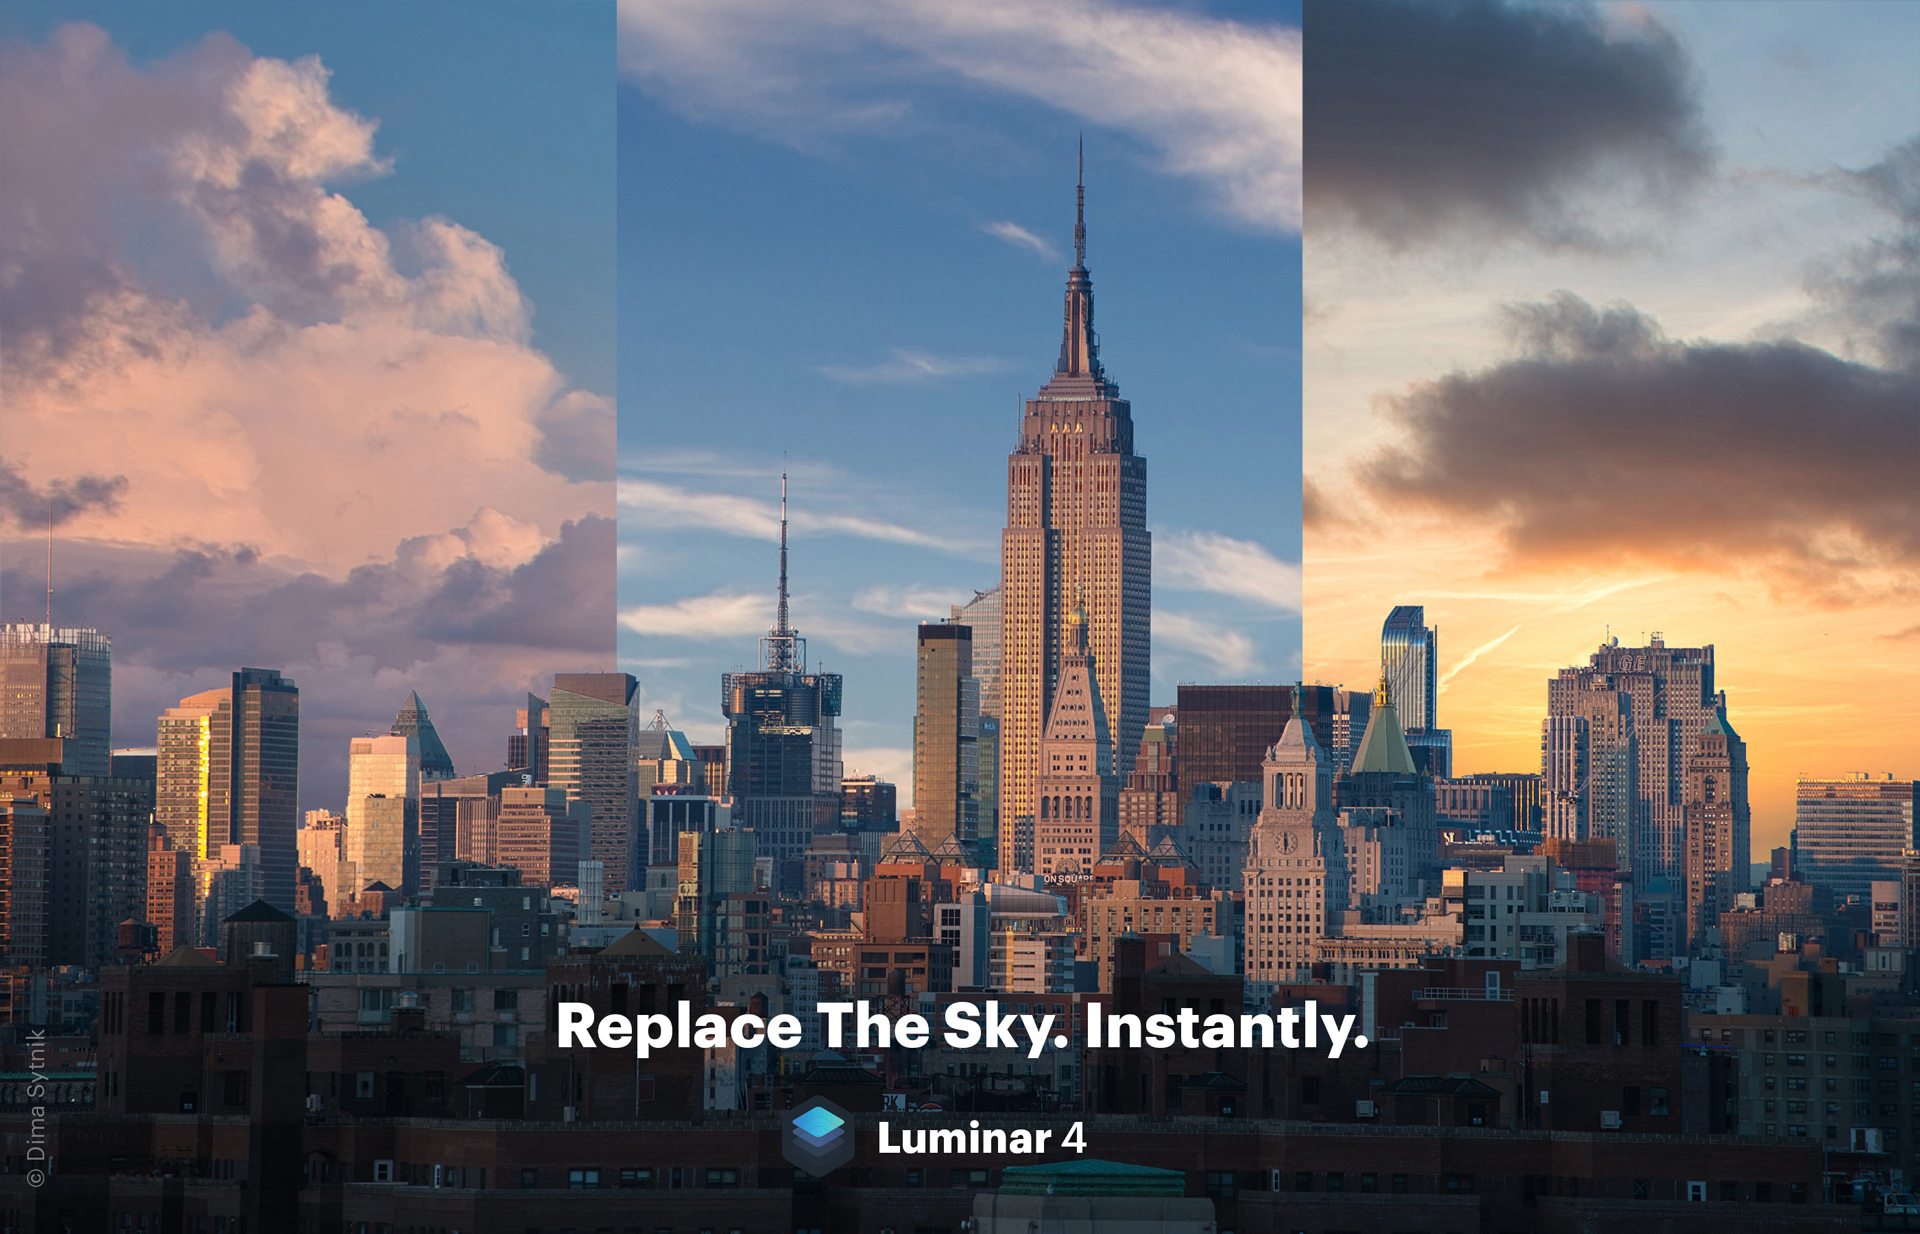 Luminar 4 AI sky replacement